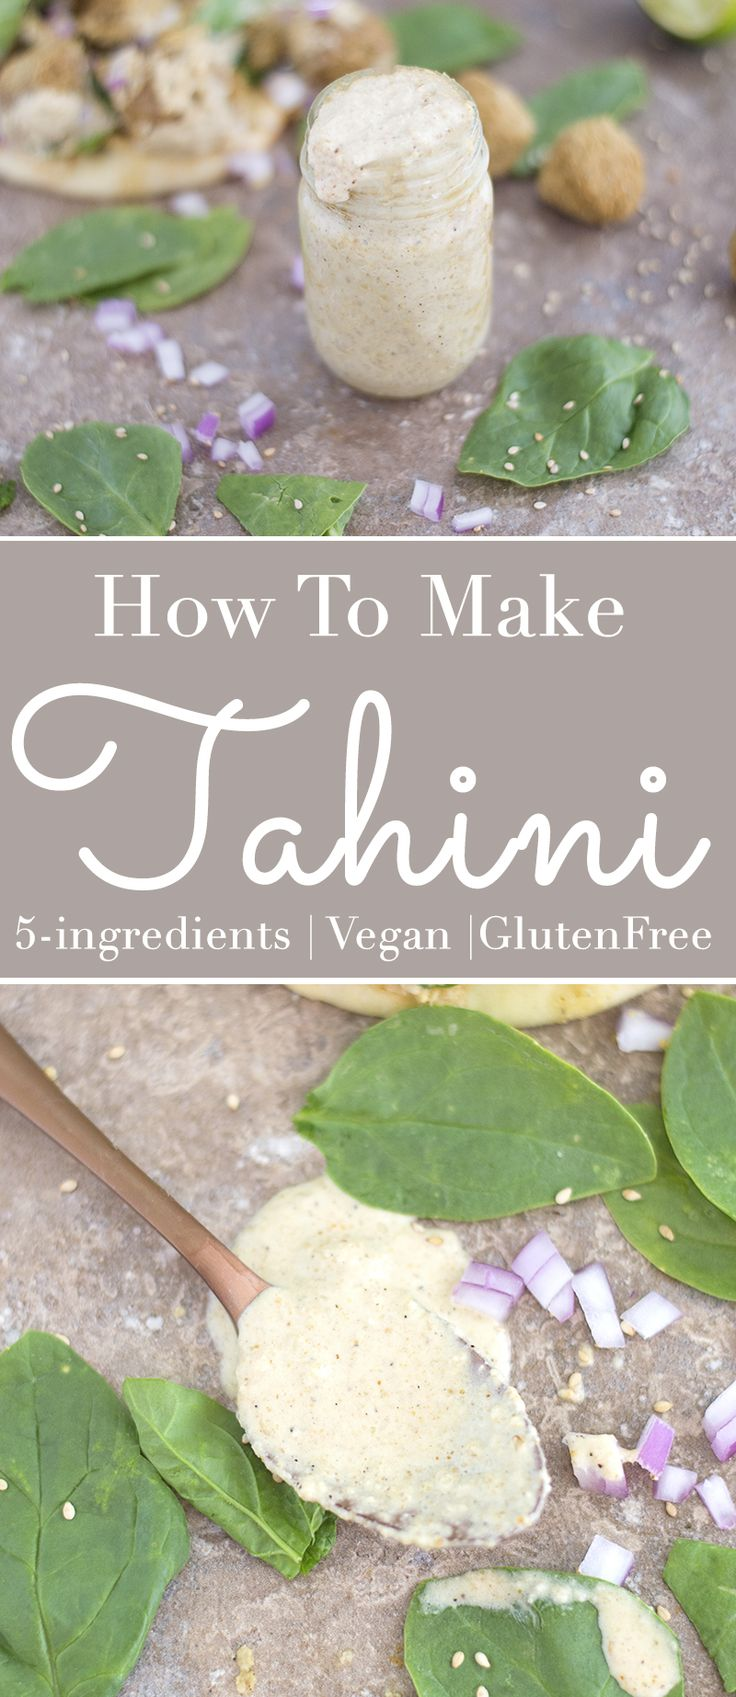 How do you make Tahini? 10 minutes and 7 ingredients needed to make this easy tahini recipe. This is a twist on the traditional tahini. | Spreads, homemade, dressings, Mediterranean recipes, Middle Eastern recipes.